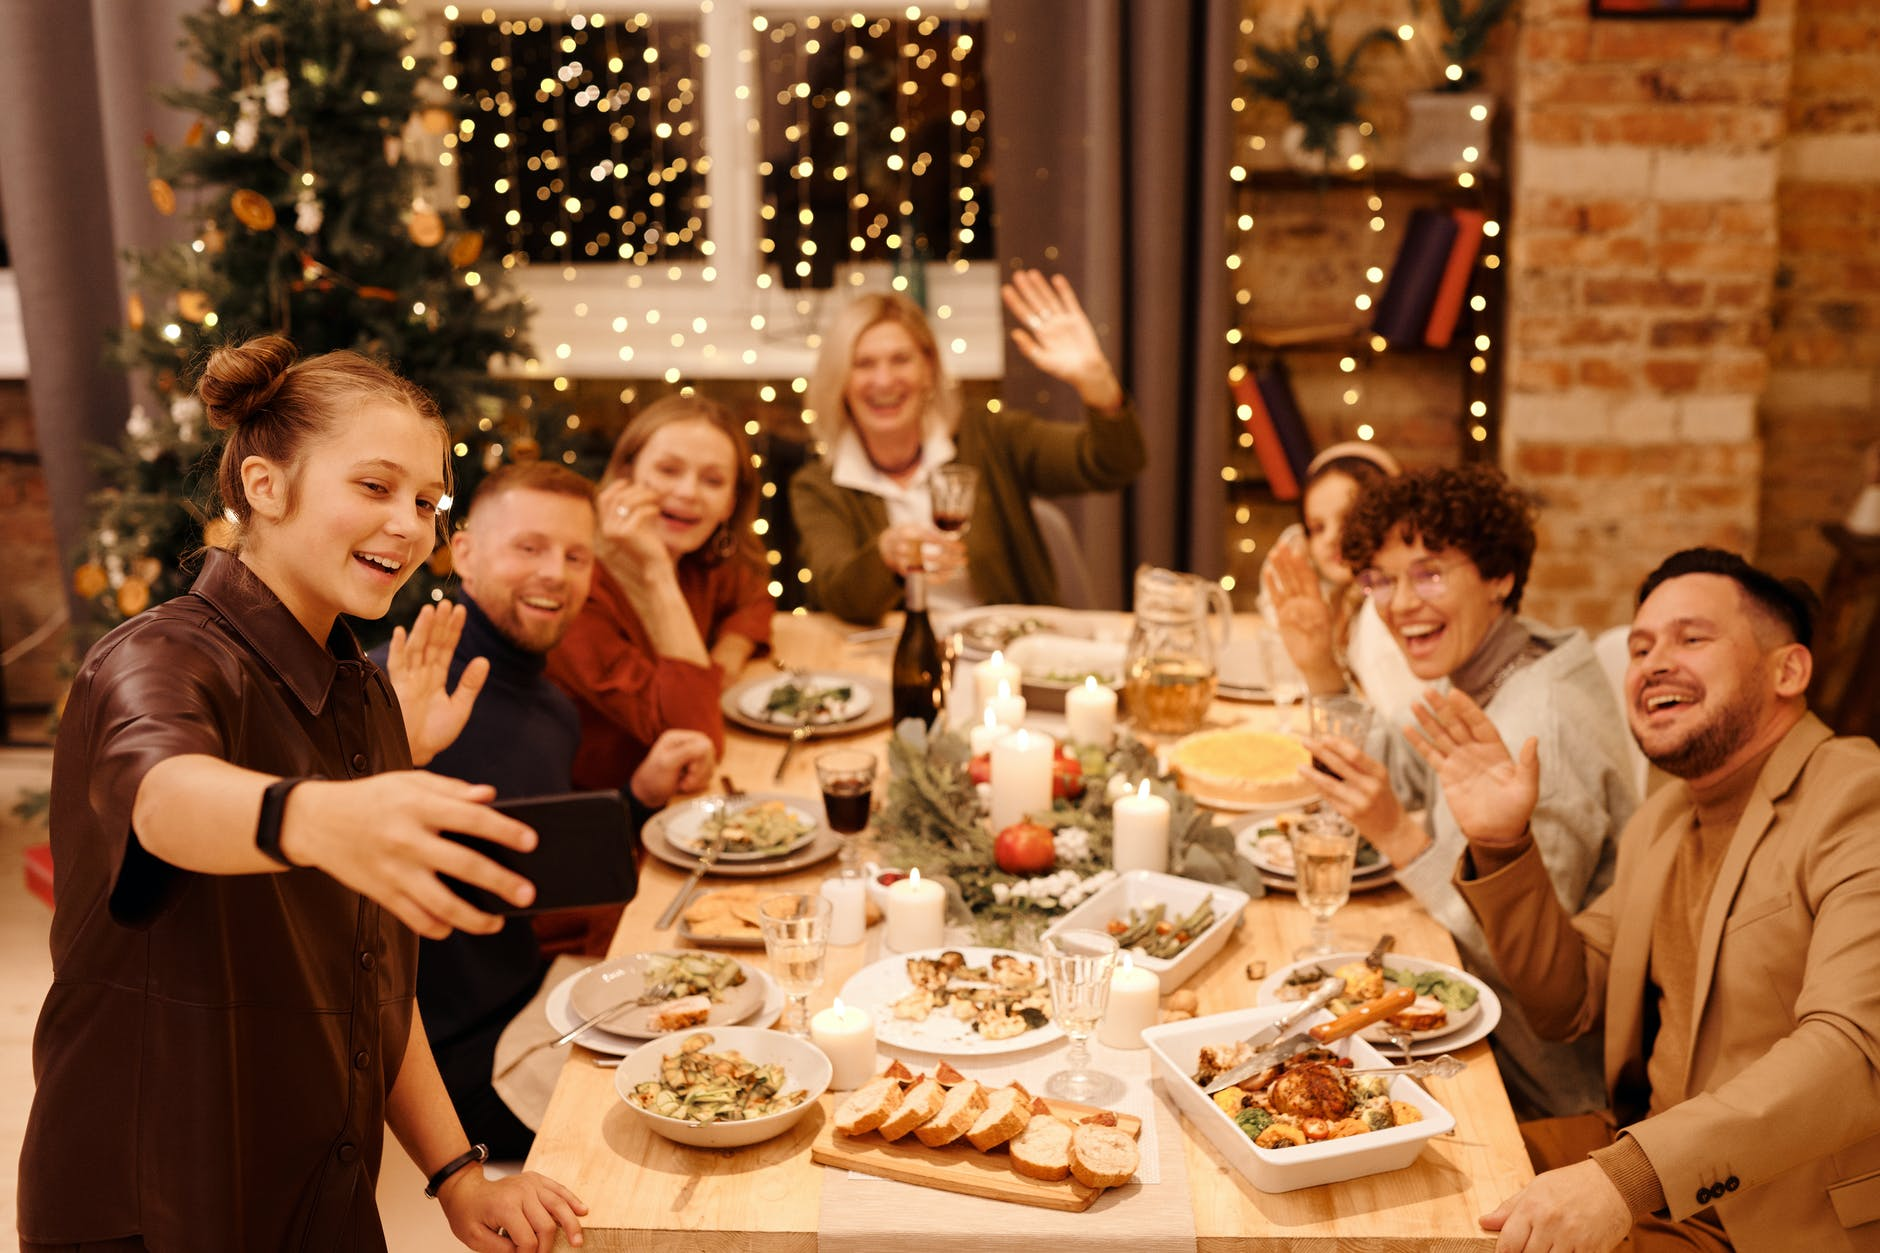 family celebrating christmas dinner while taking selfie